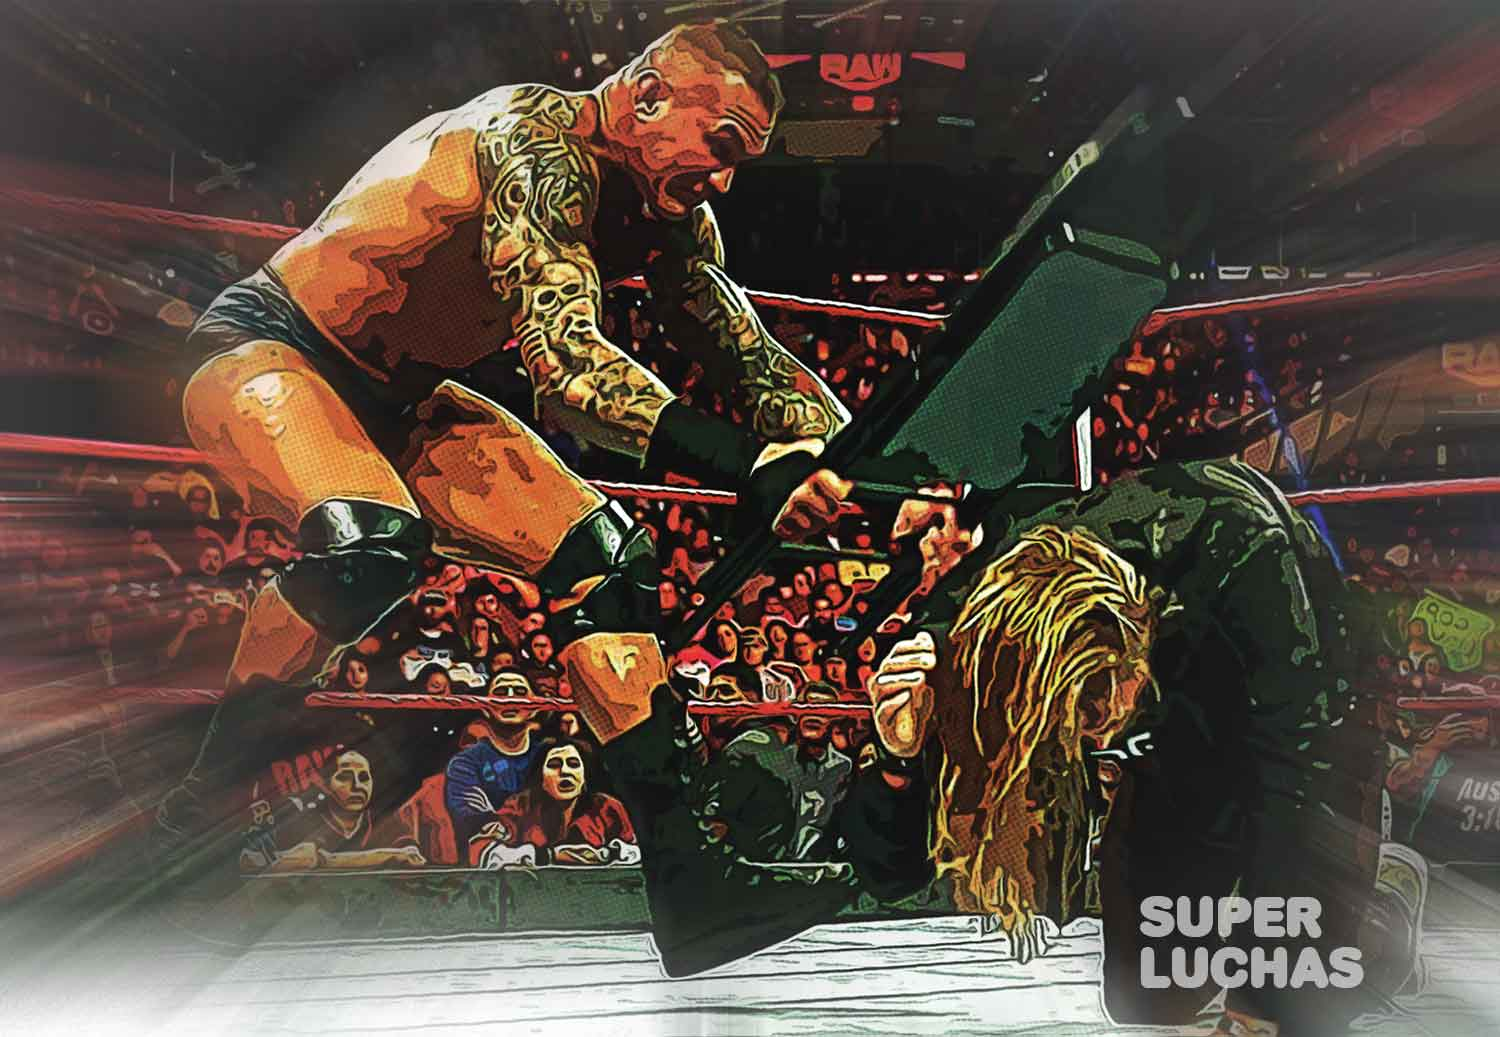 Randy Orton vs. Edge